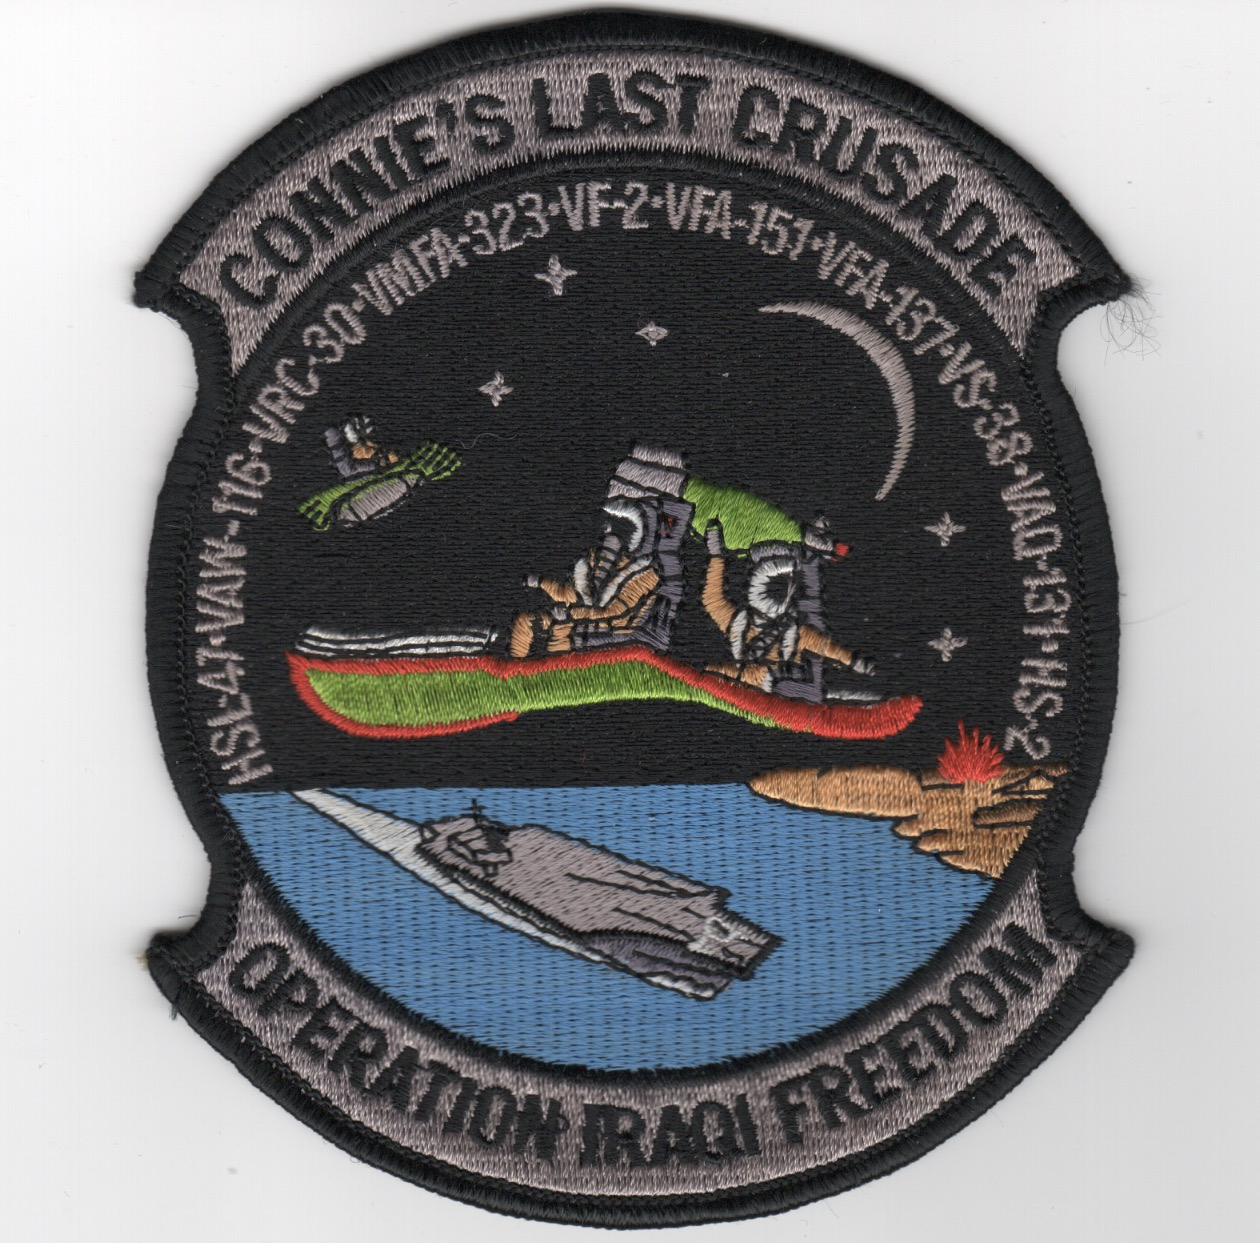 412) VF-2/CV-64 'LAST CRUSADE' Cruise Patch